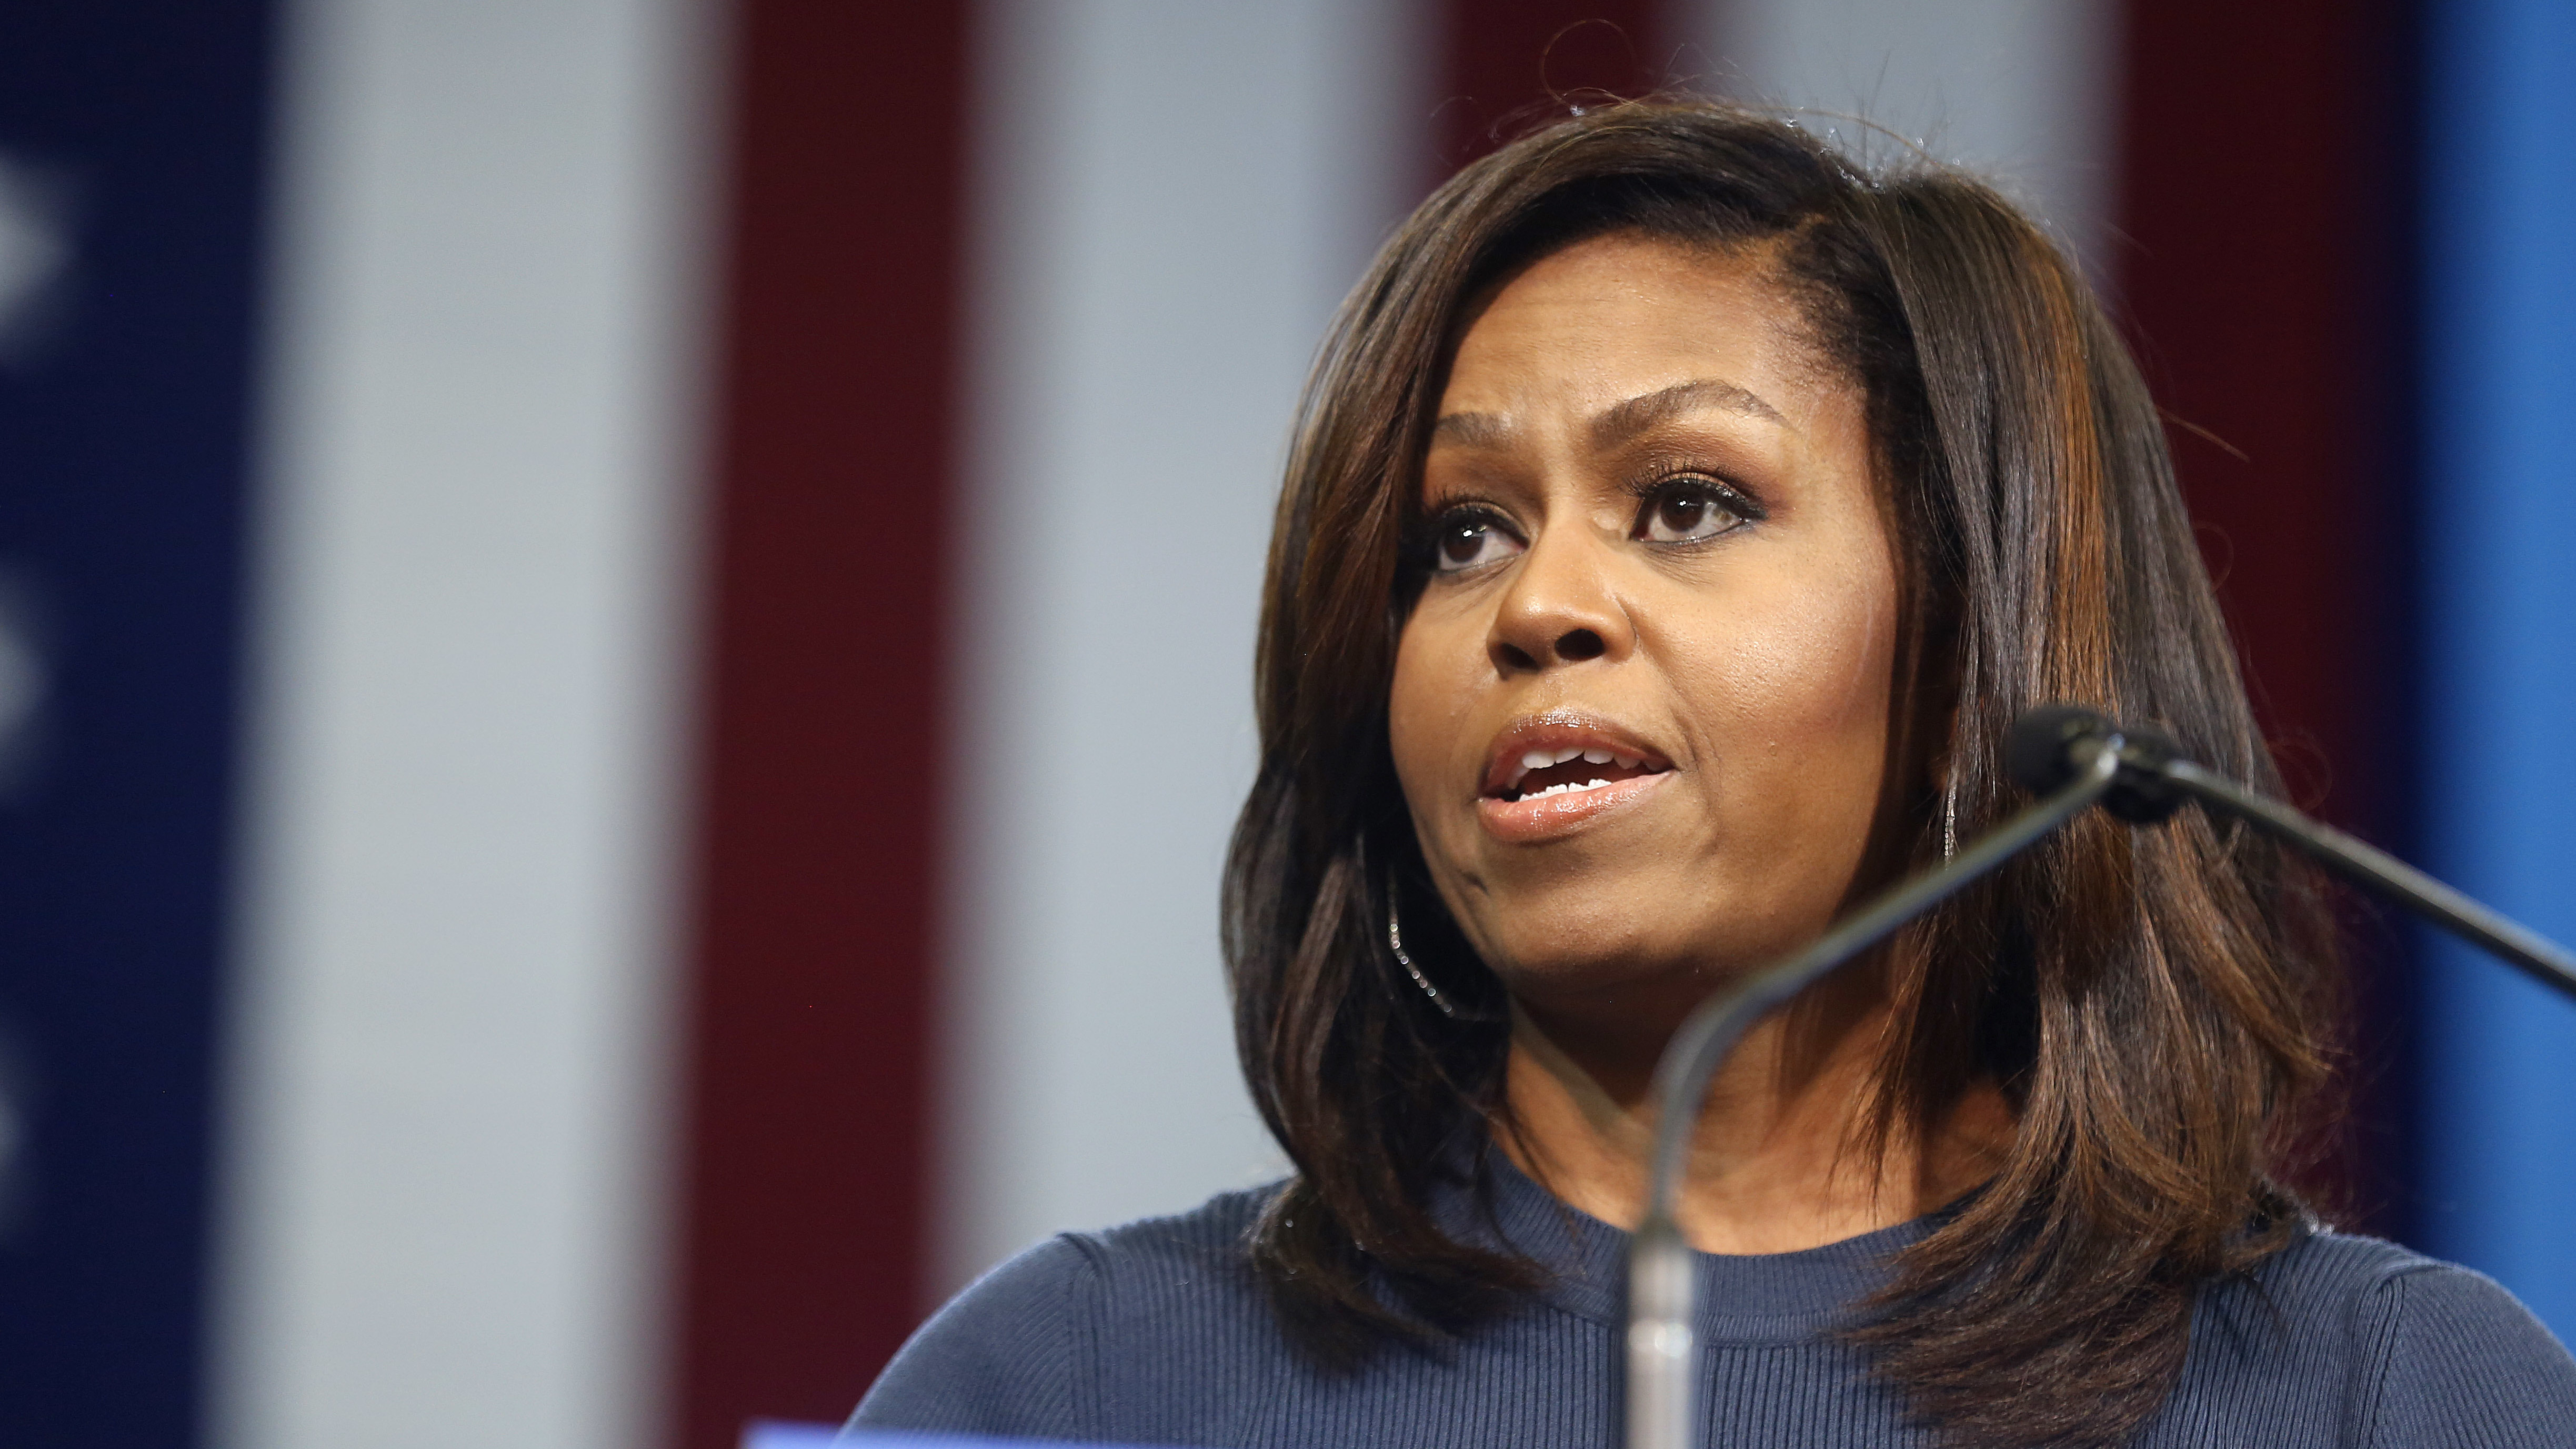 First Lady Michelle Obama Urges Voters To Support Hillary Clinton After  Trump Accusations : NPR